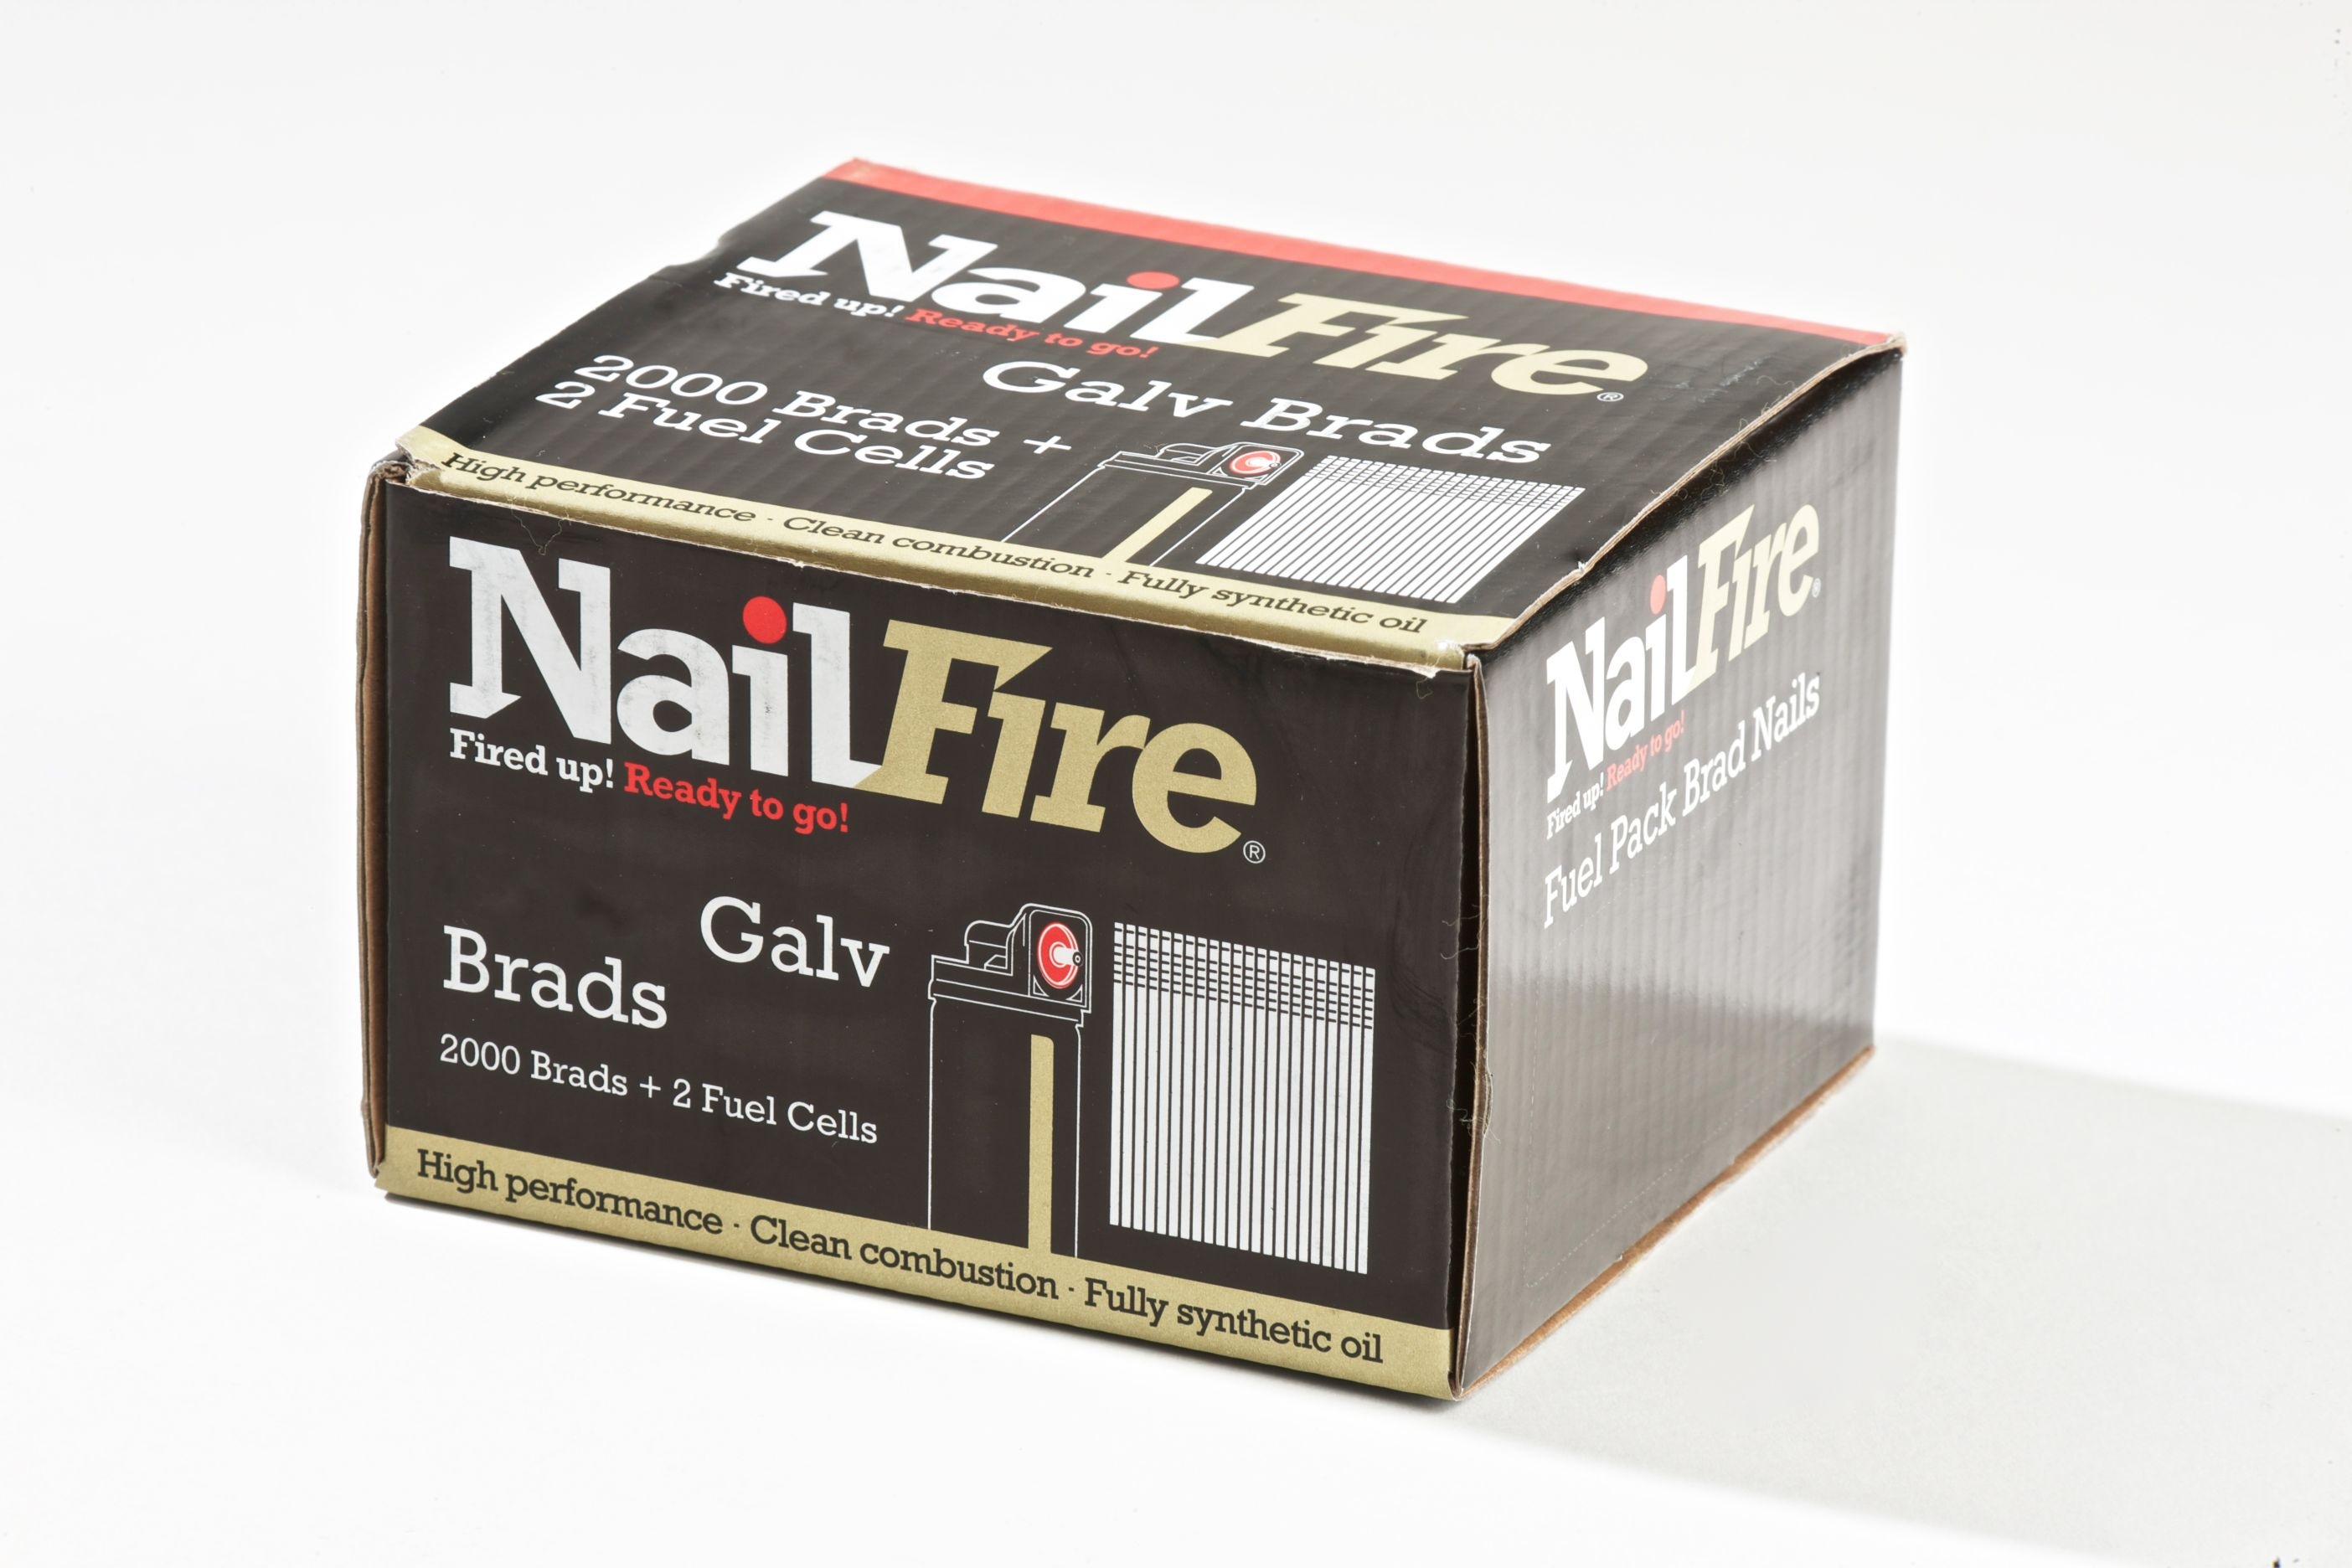 NAILFIRE 2ND FIX STRAIGHT E-GALV BRAD & FUEL PACK 45MM (TUB OF 2000)